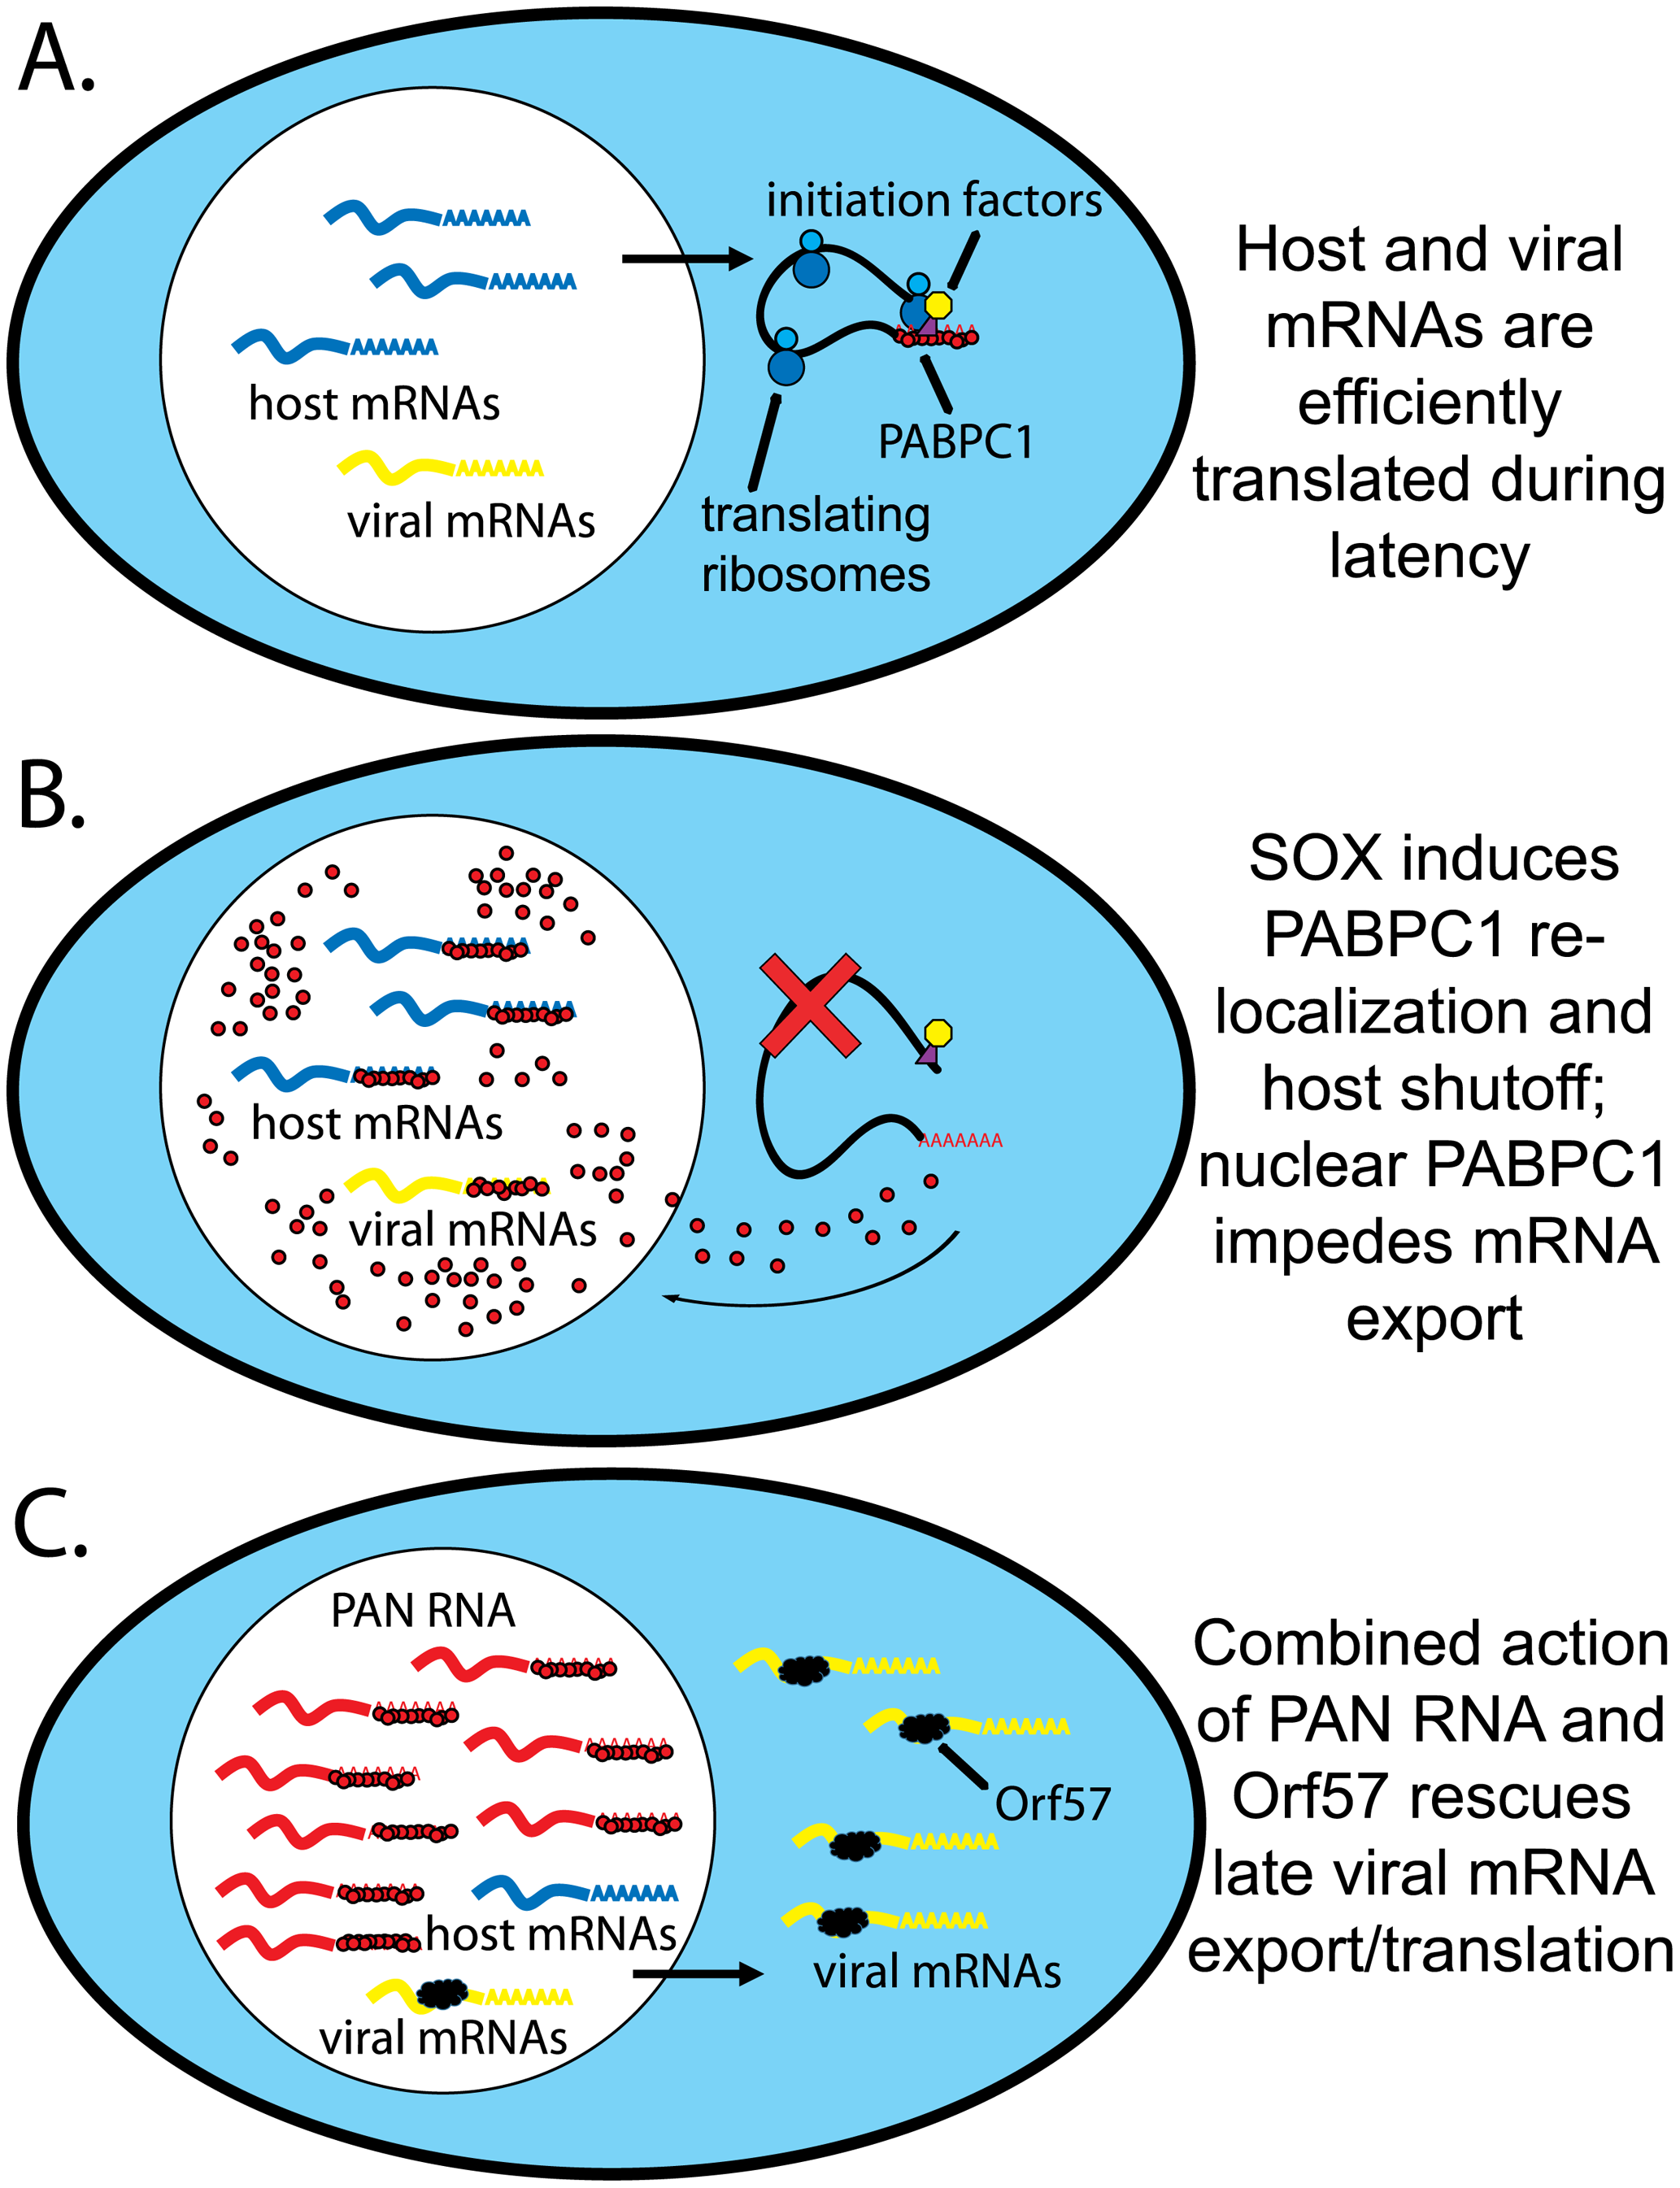 Model for PAN RNA sequestering nuclear re-localized PABPC1.